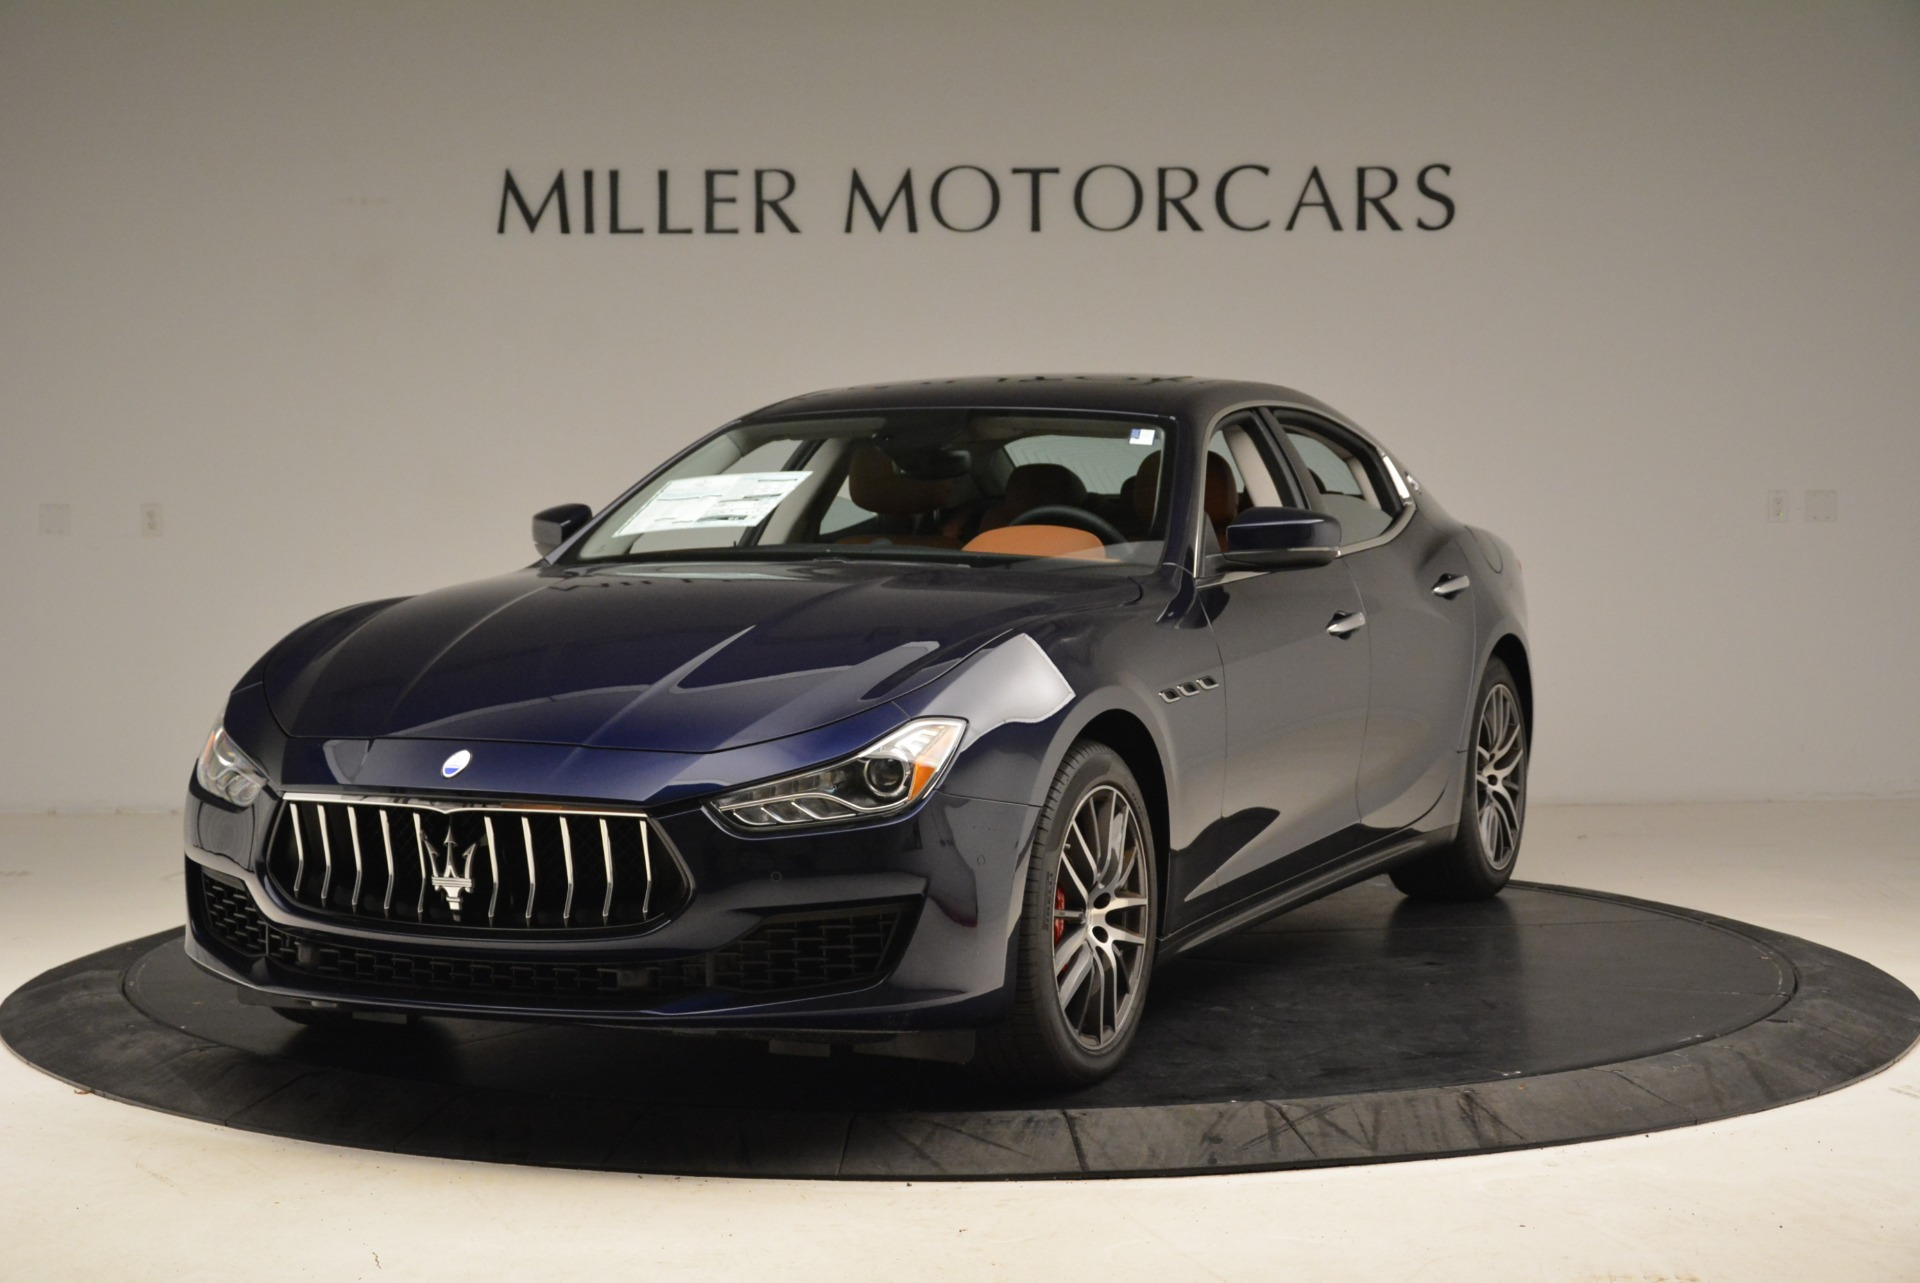 New 2020 Maserati Ghibli S Q4 for sale $87,835 at Maserati of Greenwich in Greenwich CT 06830 1